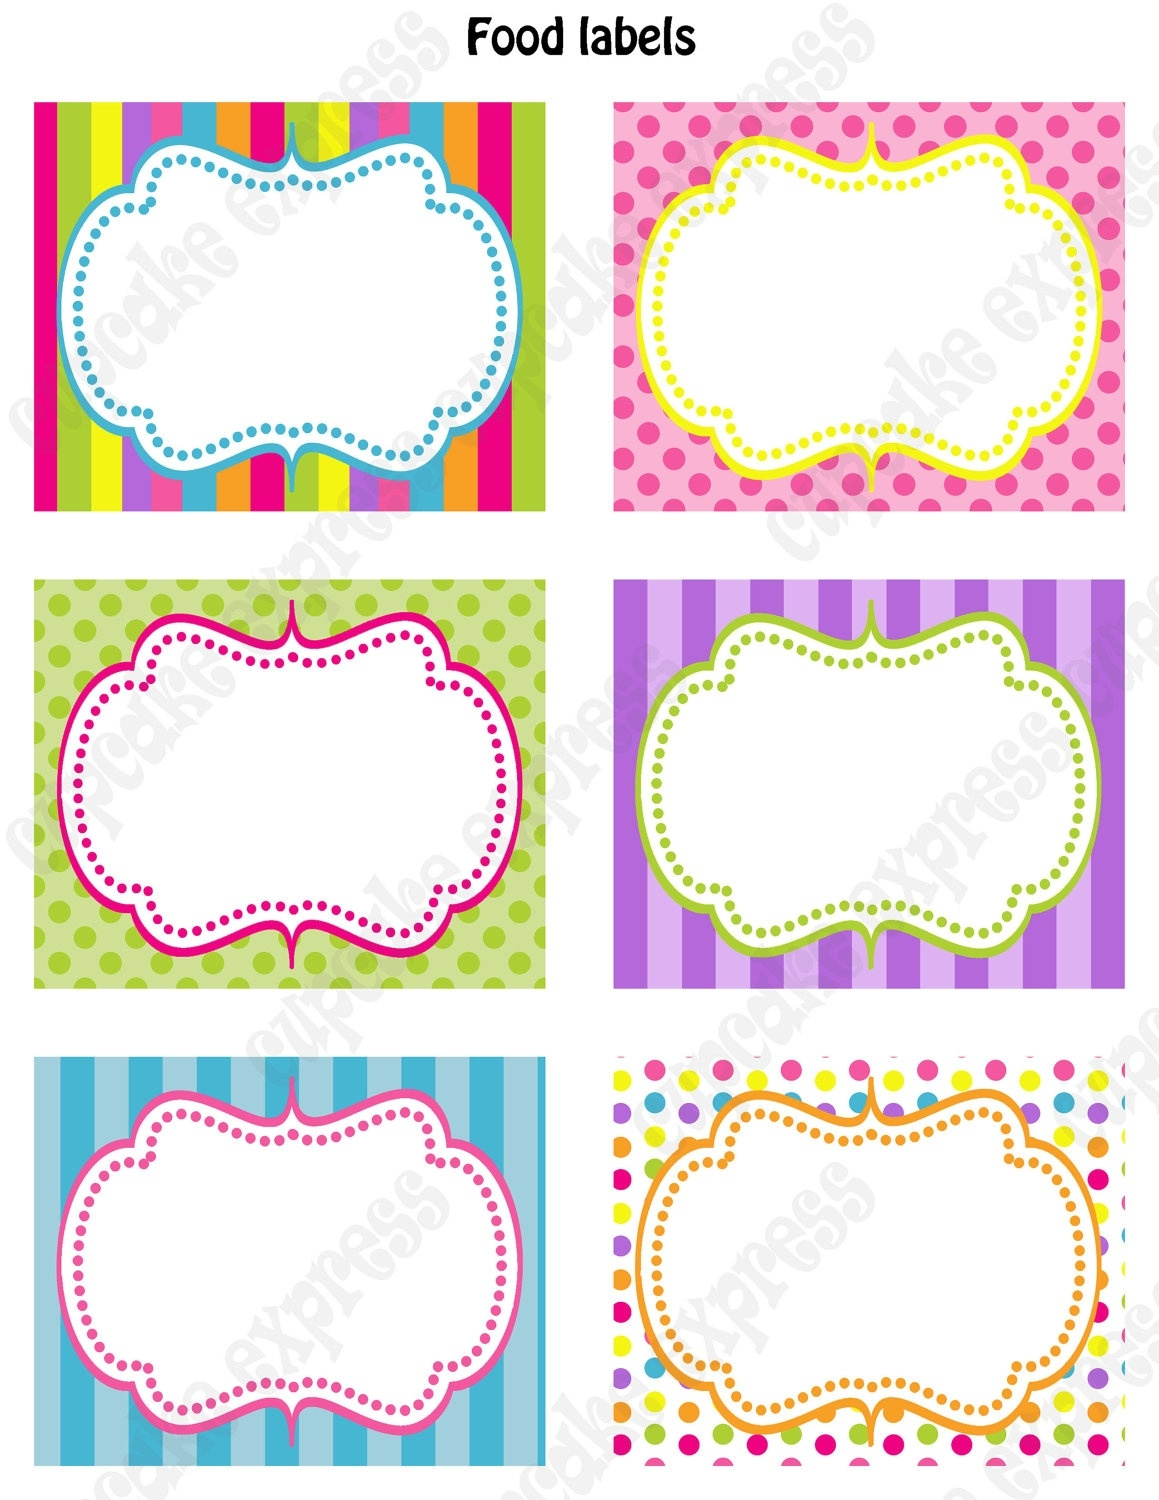 Candy Shoppe Birthday Party Printable Food Labels Pink Green Blue - Free Printable Food Labels